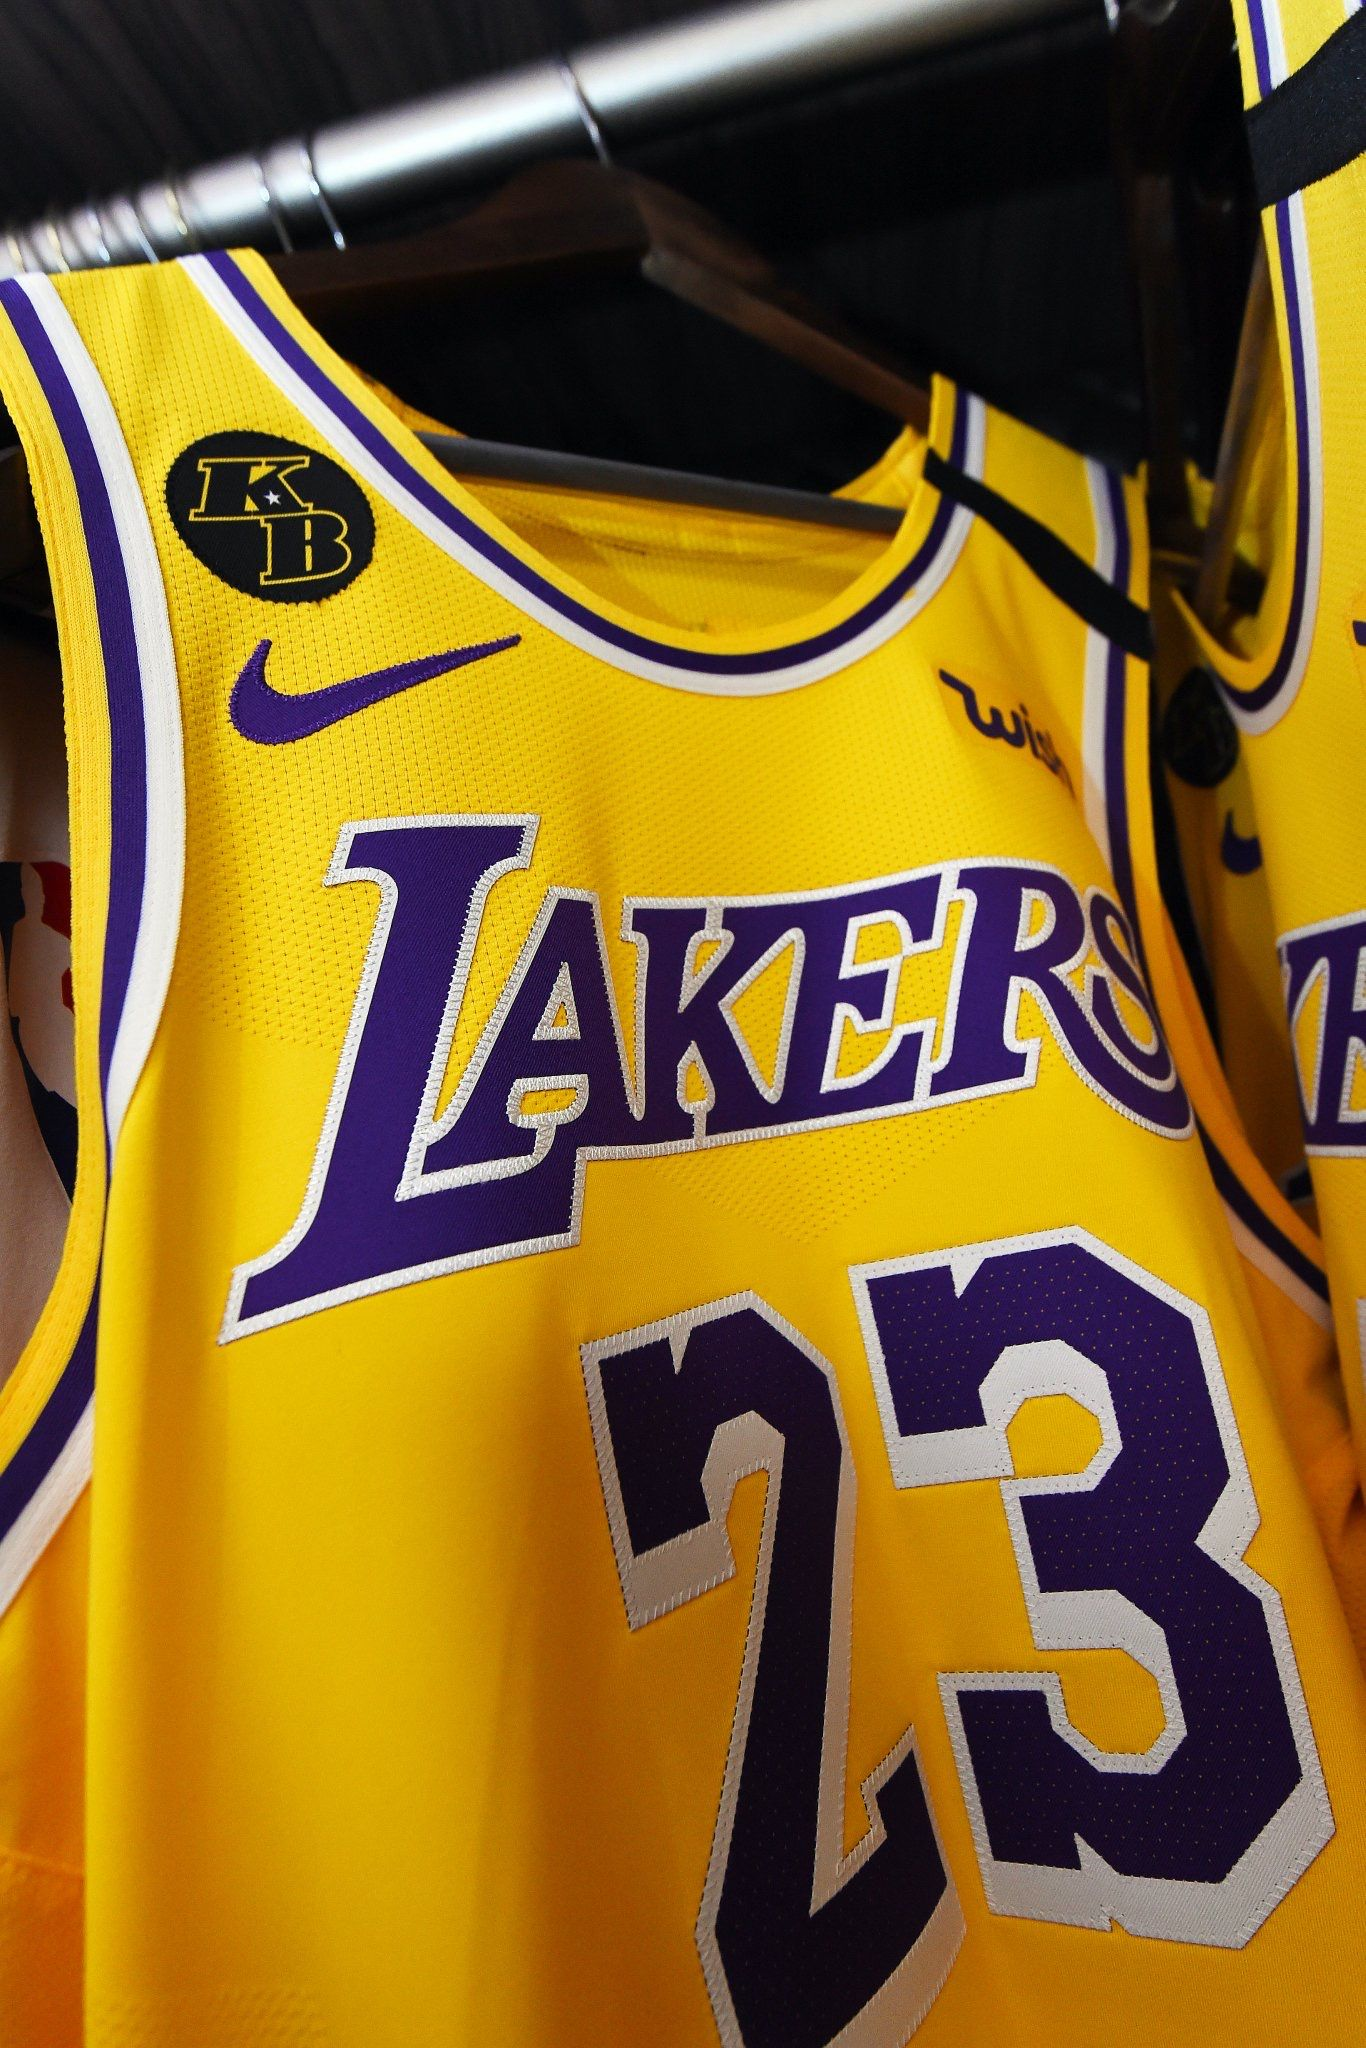 Kingjames Jersey With Kb In 2020 Lebron James Poster Lakers Logo Los Angeles Lakers